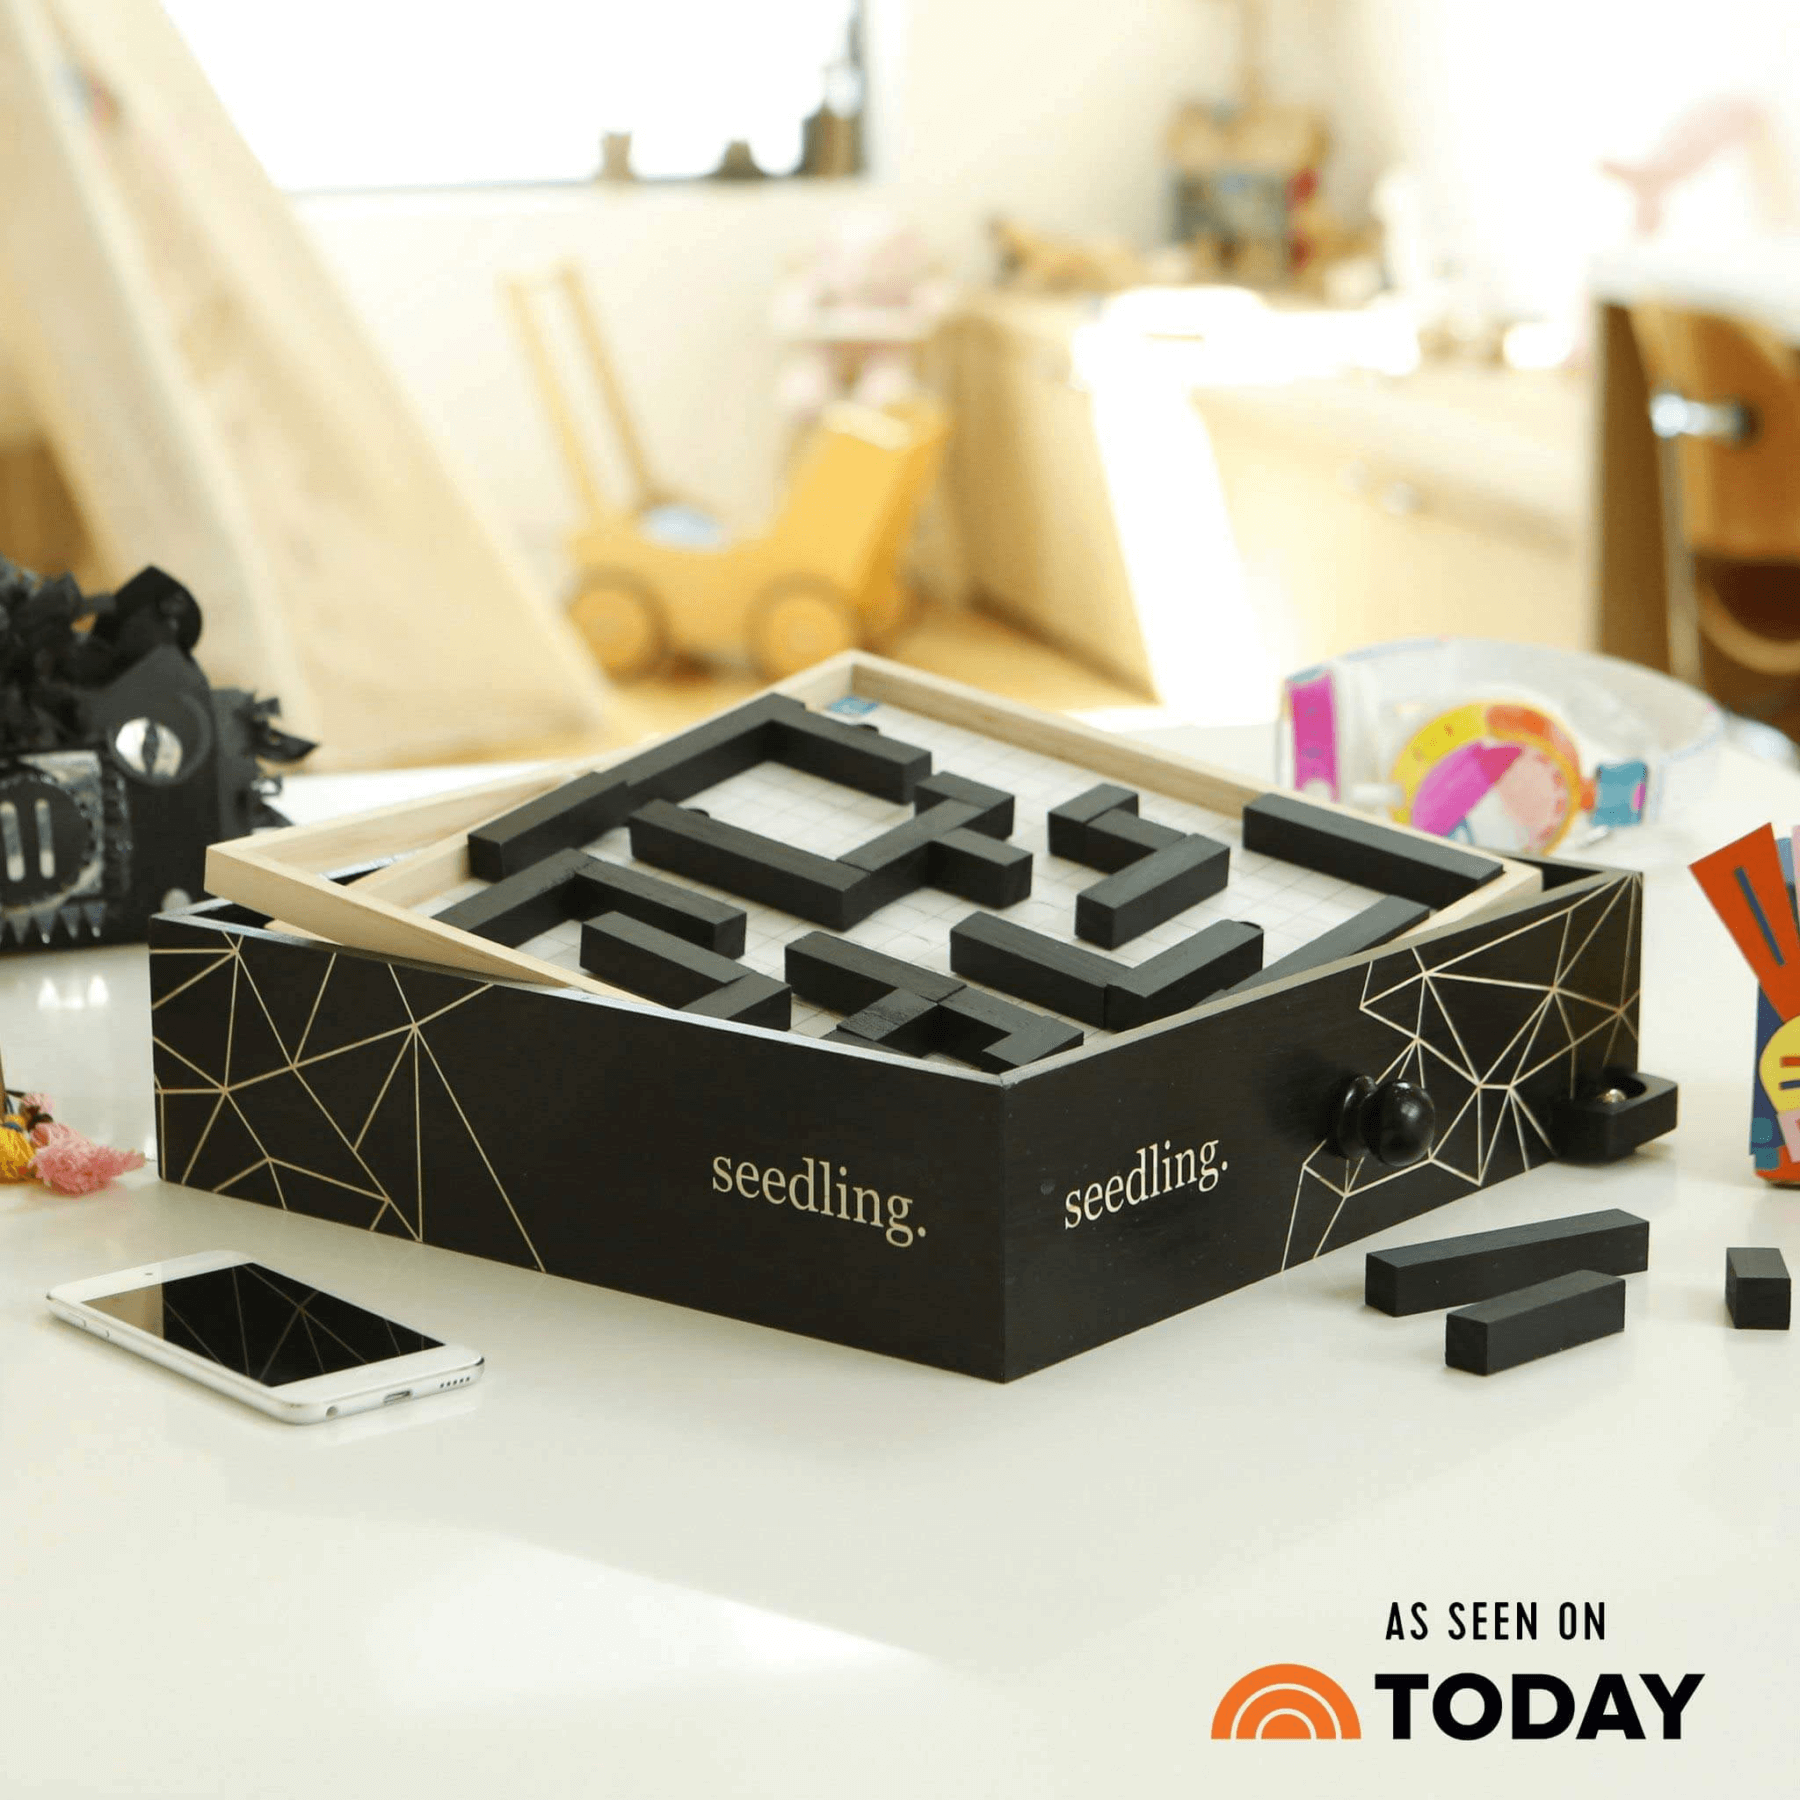 New Design Your Own Marble Maze Kit From Seedling